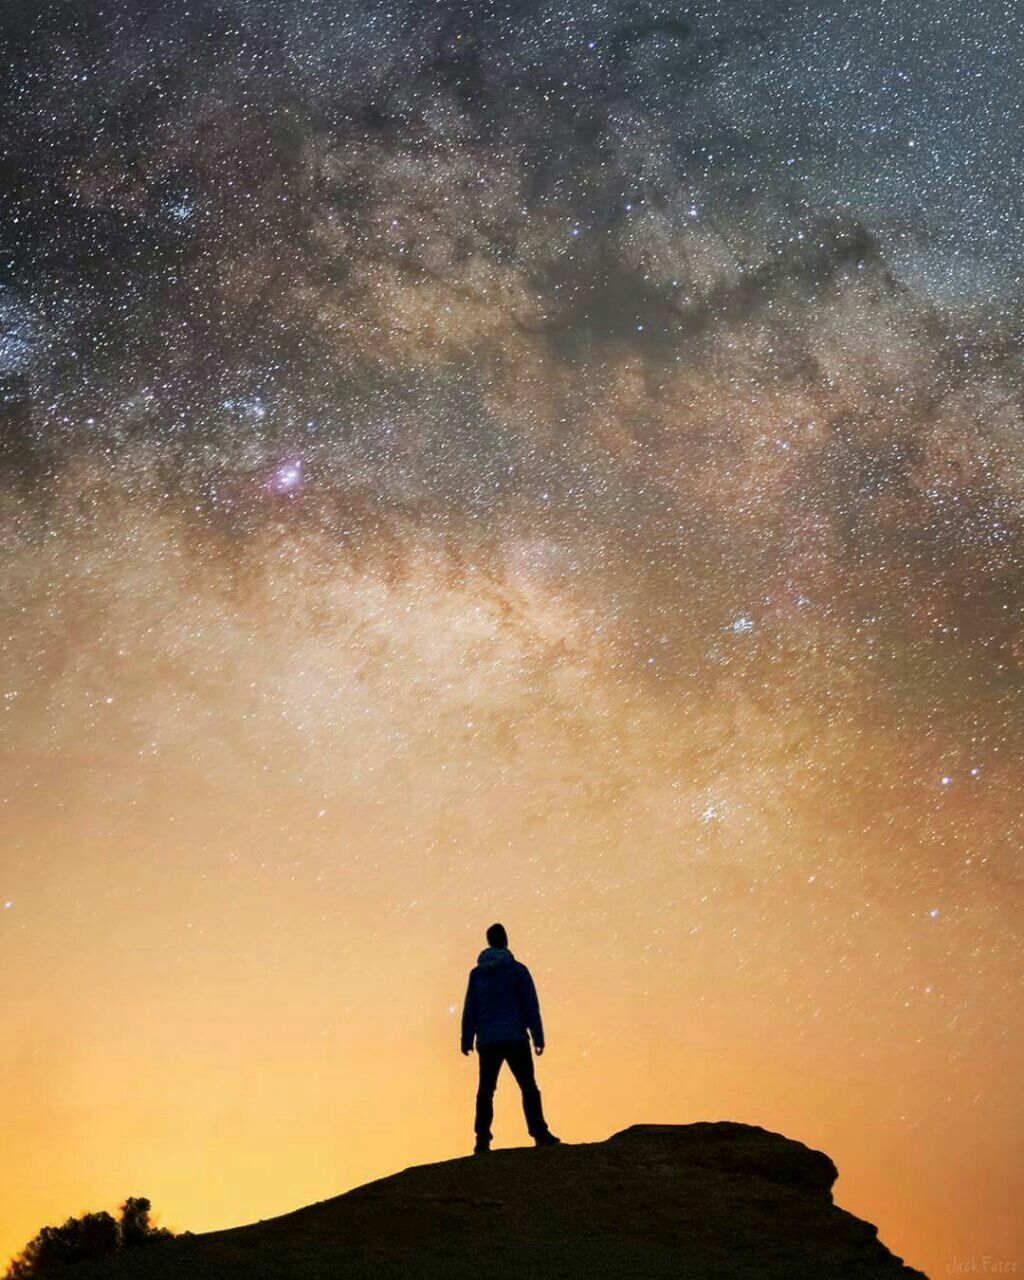 Why do we see so few stars in the sky